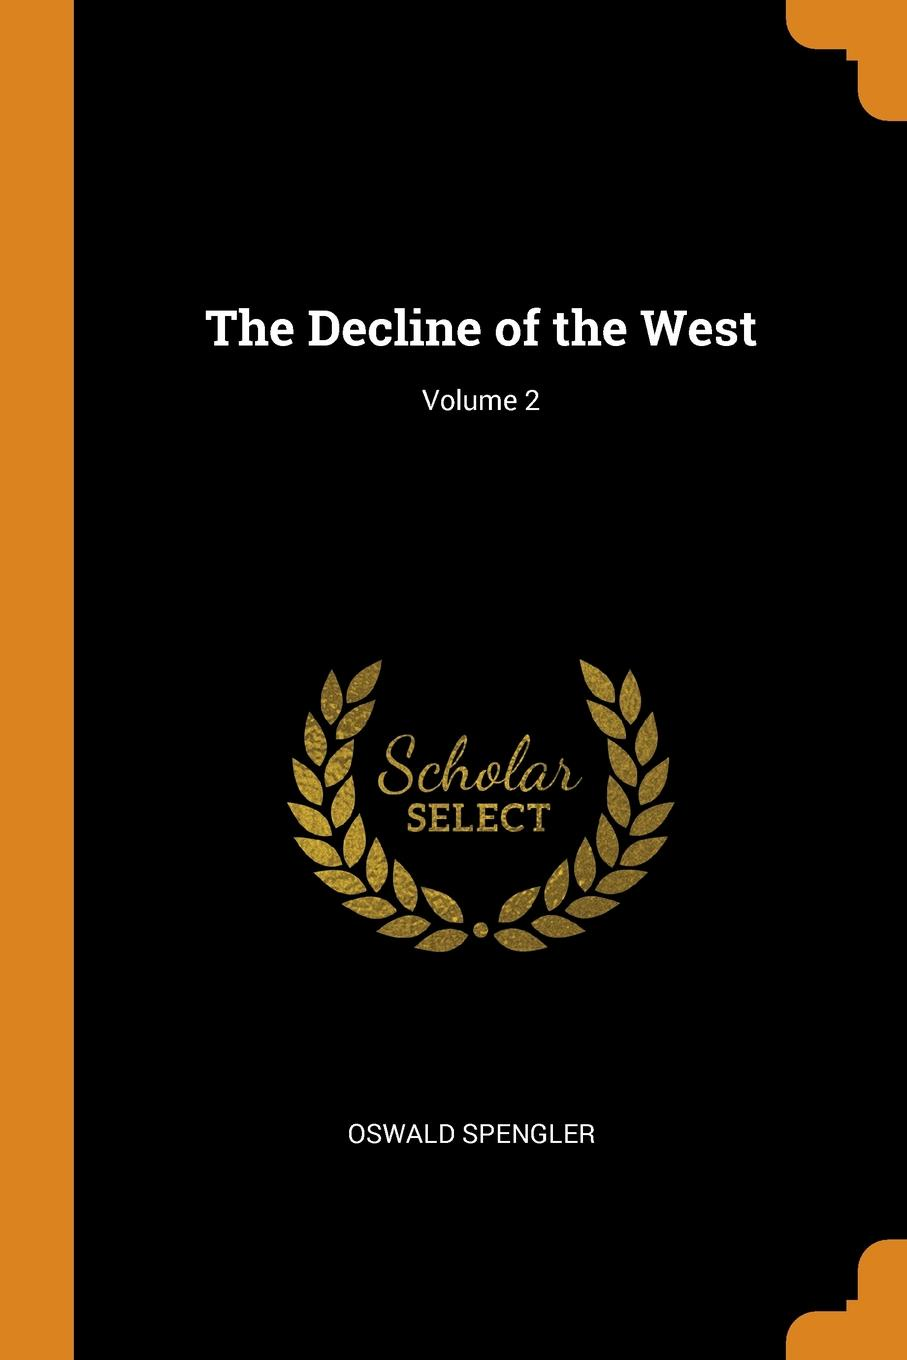 Oswald Spengler. The Decline of the West; Volume 2